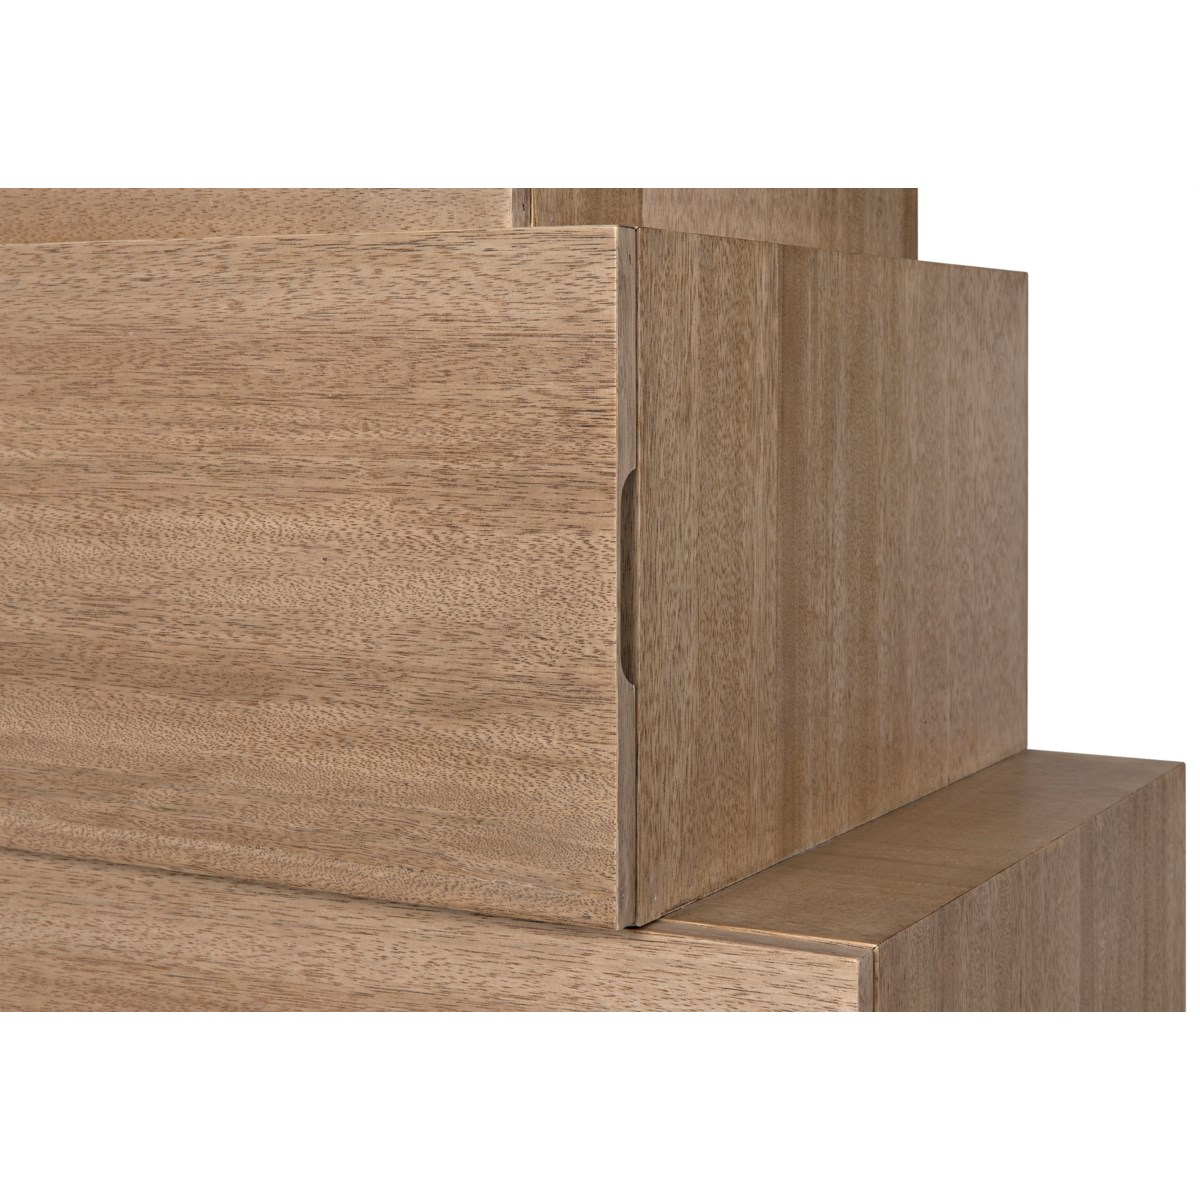 Bebe Accent Chest, Washed Walnut